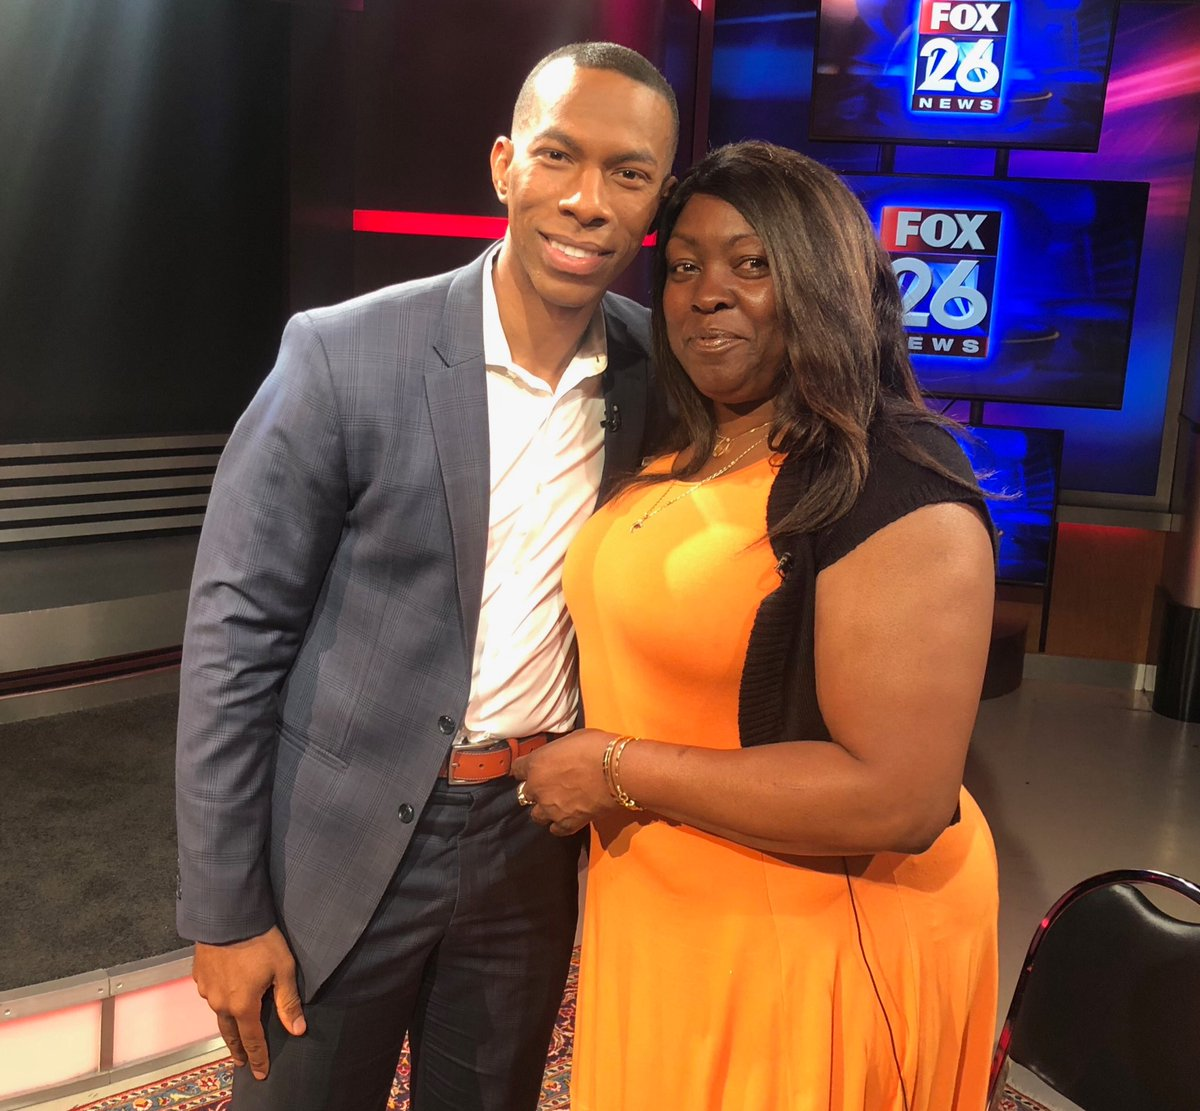 64f0f46a87b7 (13 is Harden s number) Send an email to 3theHardenWay gmail.com and  explain in 150 words or less why the mother is deserving  fox26houston ...